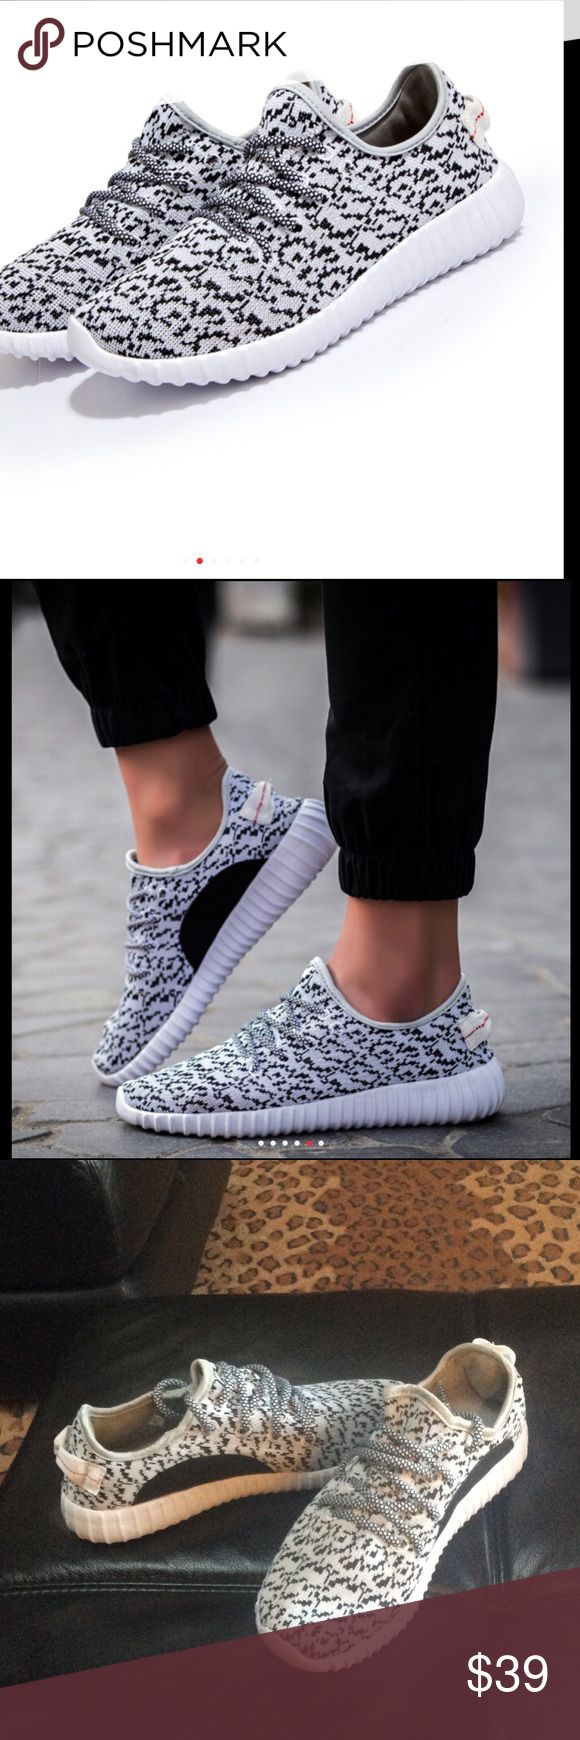 Yeezy turtle Dove sneakers Marled  knit upper light grey and black with rubber sole gives the look almost exact look of the adidas turtle dove but not the heavy price tag. Light weight and extremely comfortable NO TRADES PRICE IS FIRM‼️😊 Shoes Sneakers